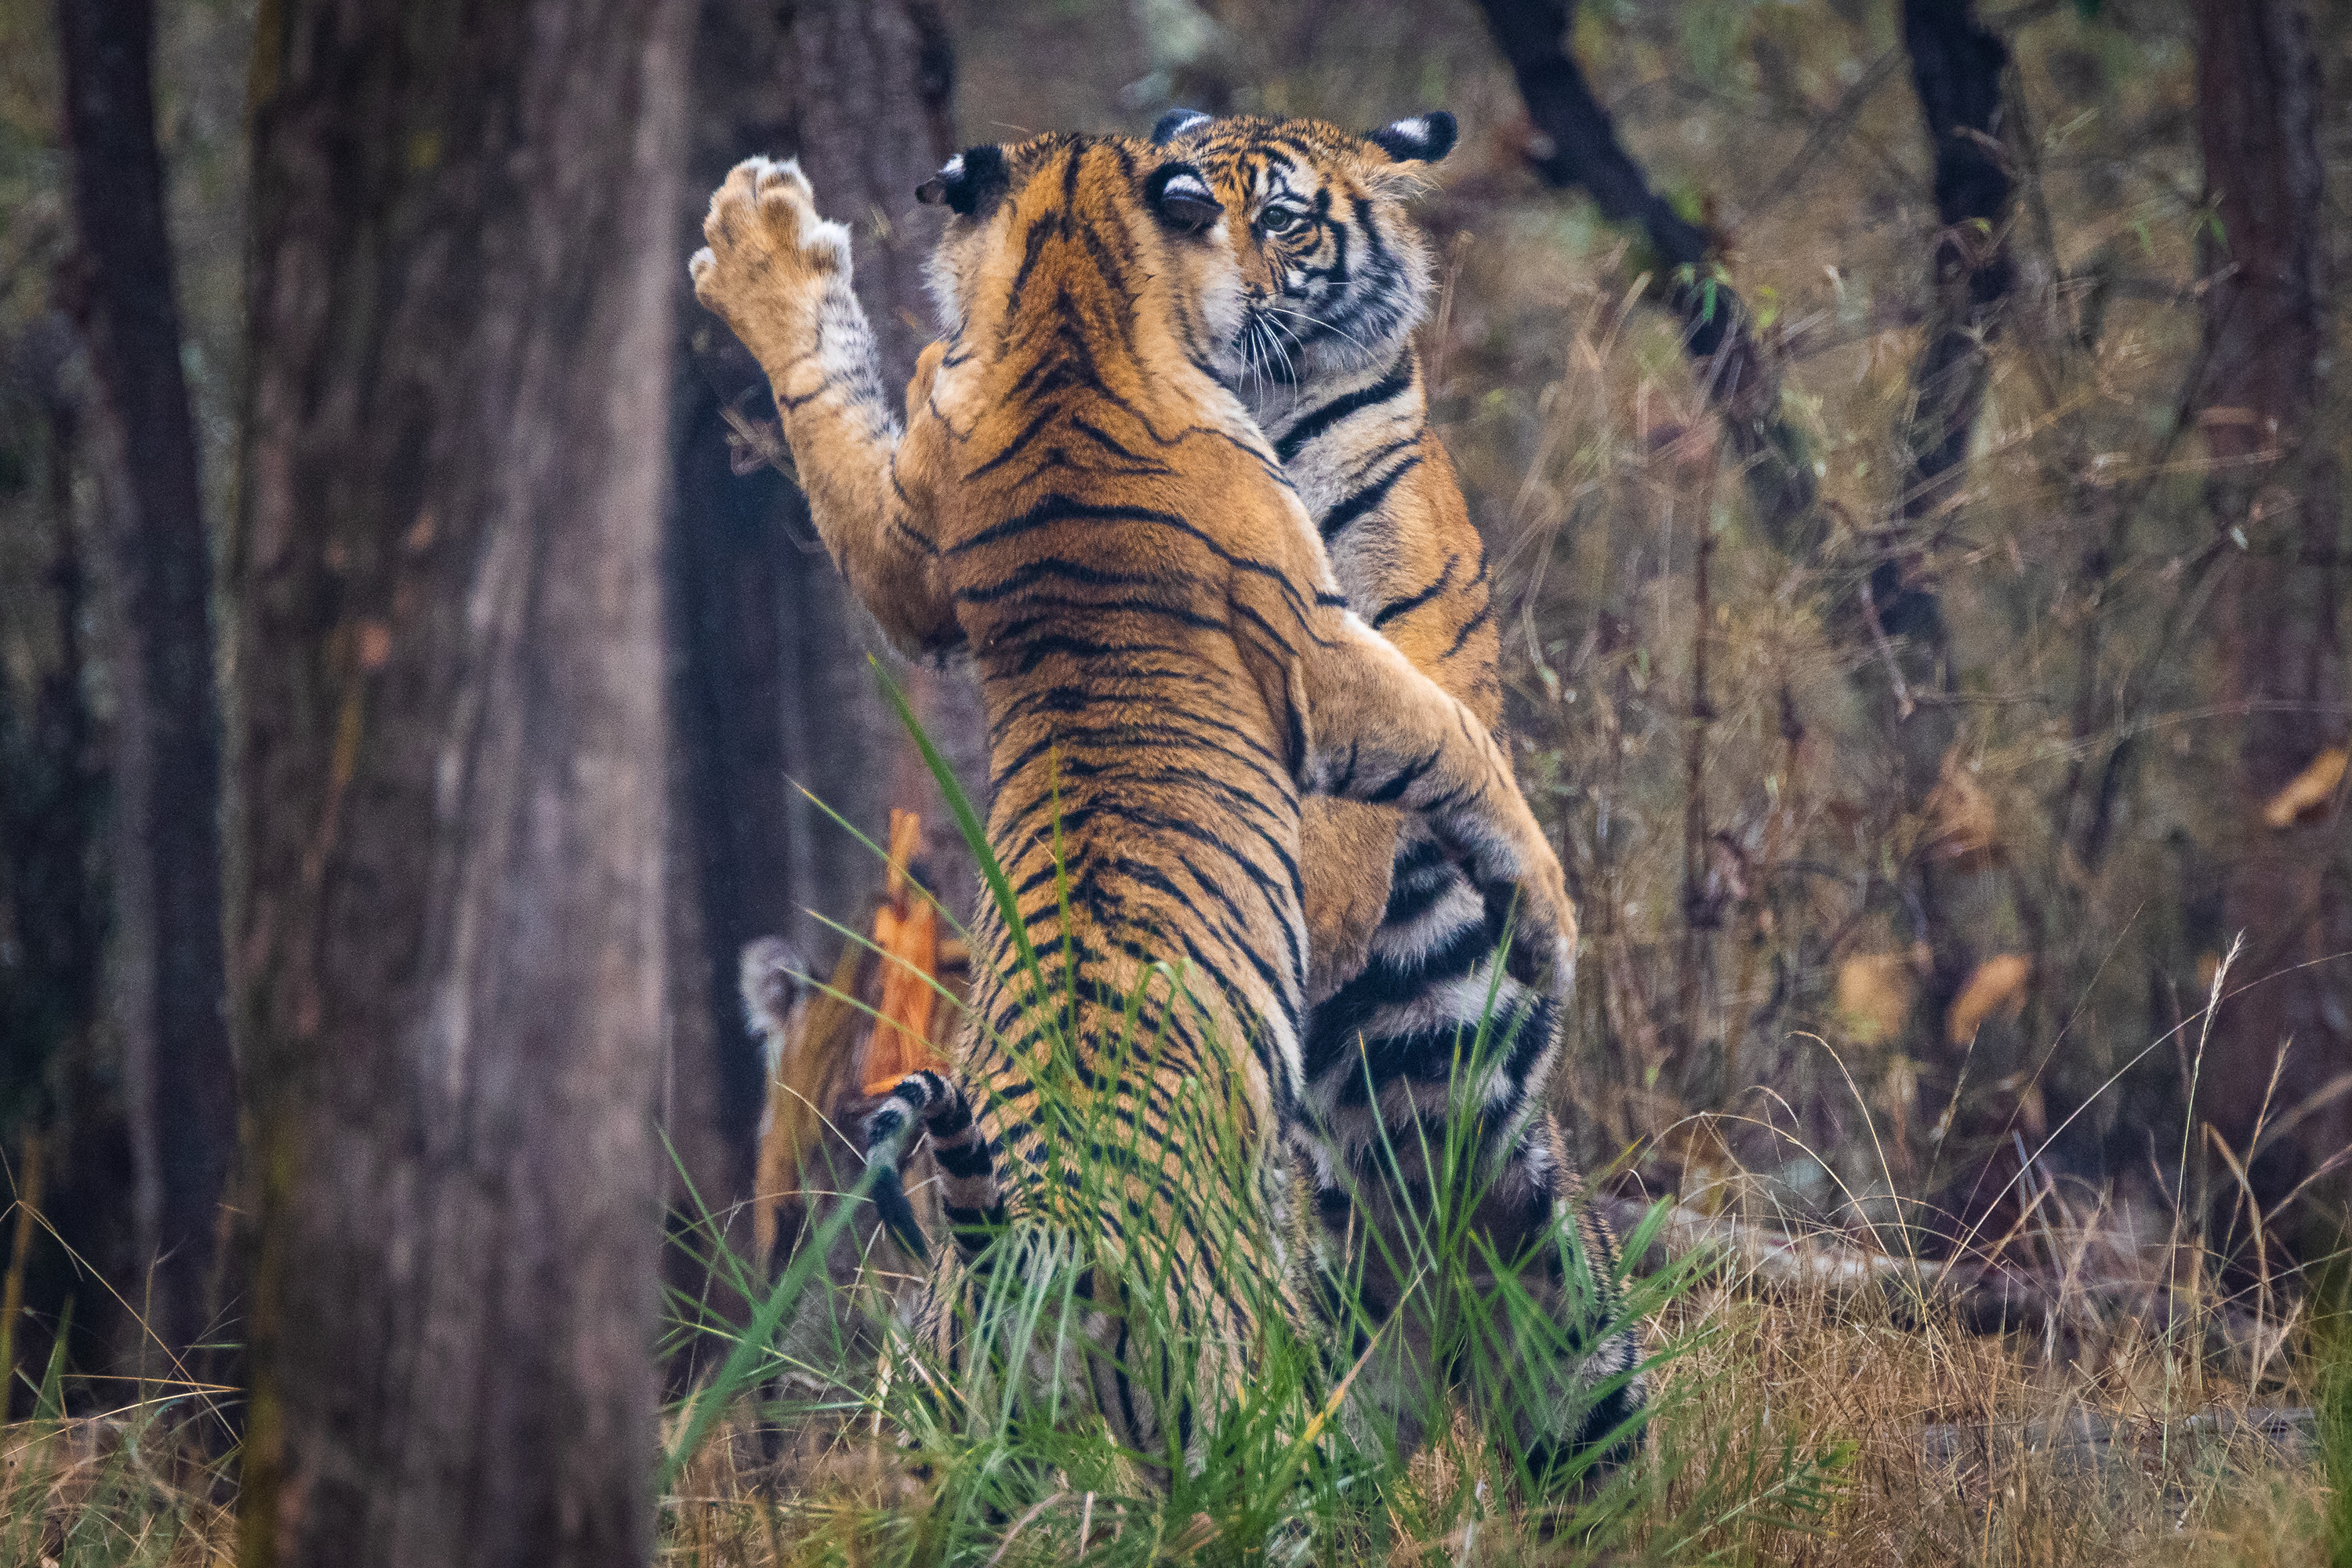 Play fighting is an integral part of a tiger's growing up years. These mock battles with siblings help hone important skills like taking down prey on a hunt